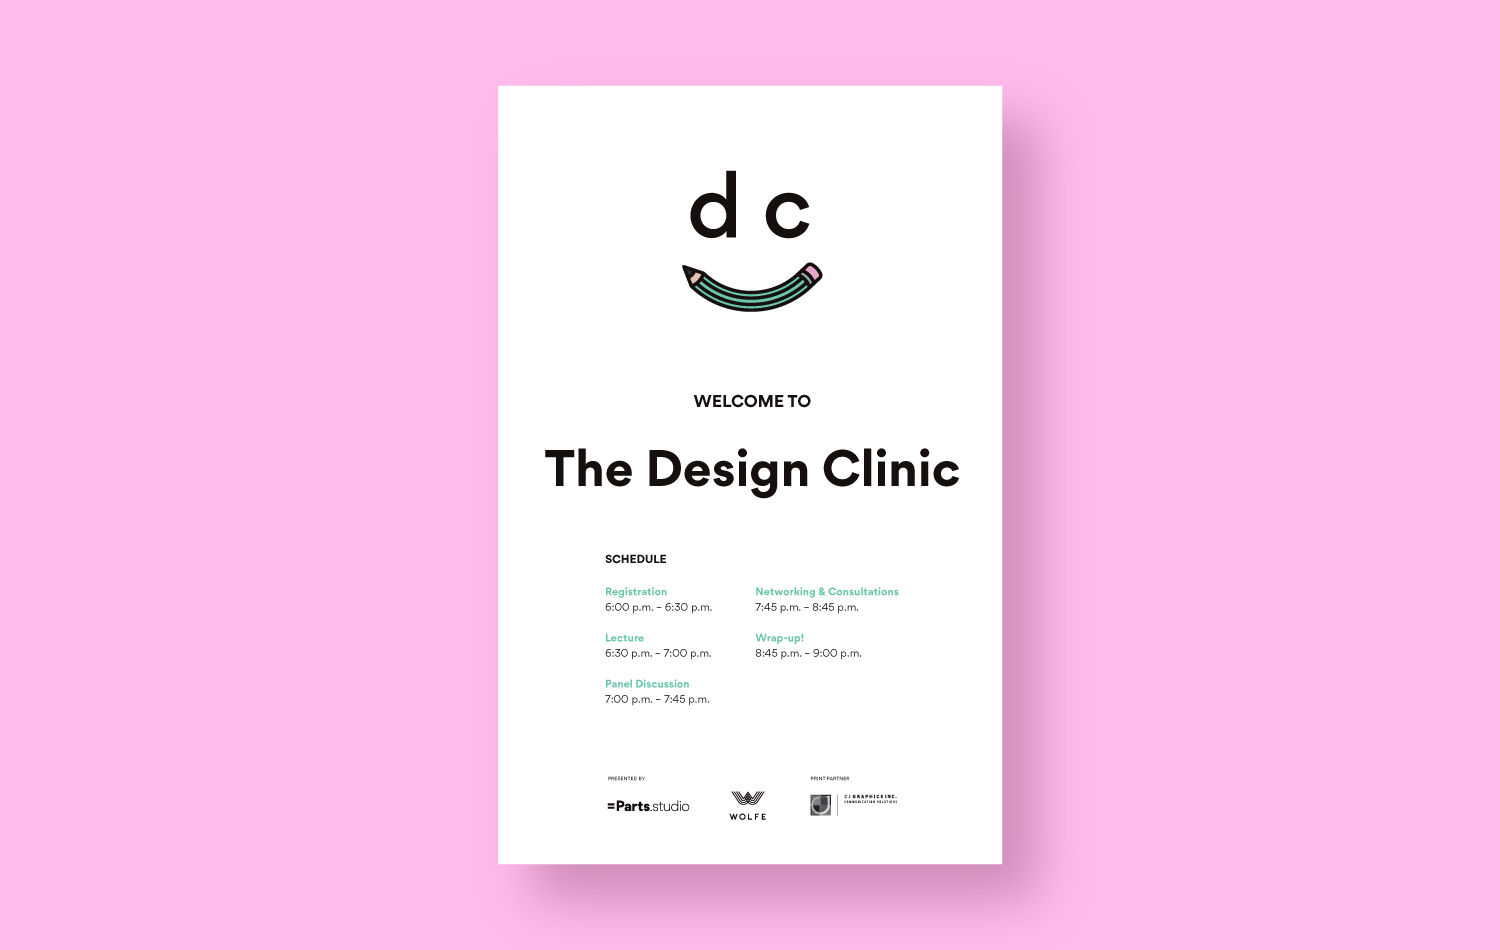 Design Clinic Welcome Sign